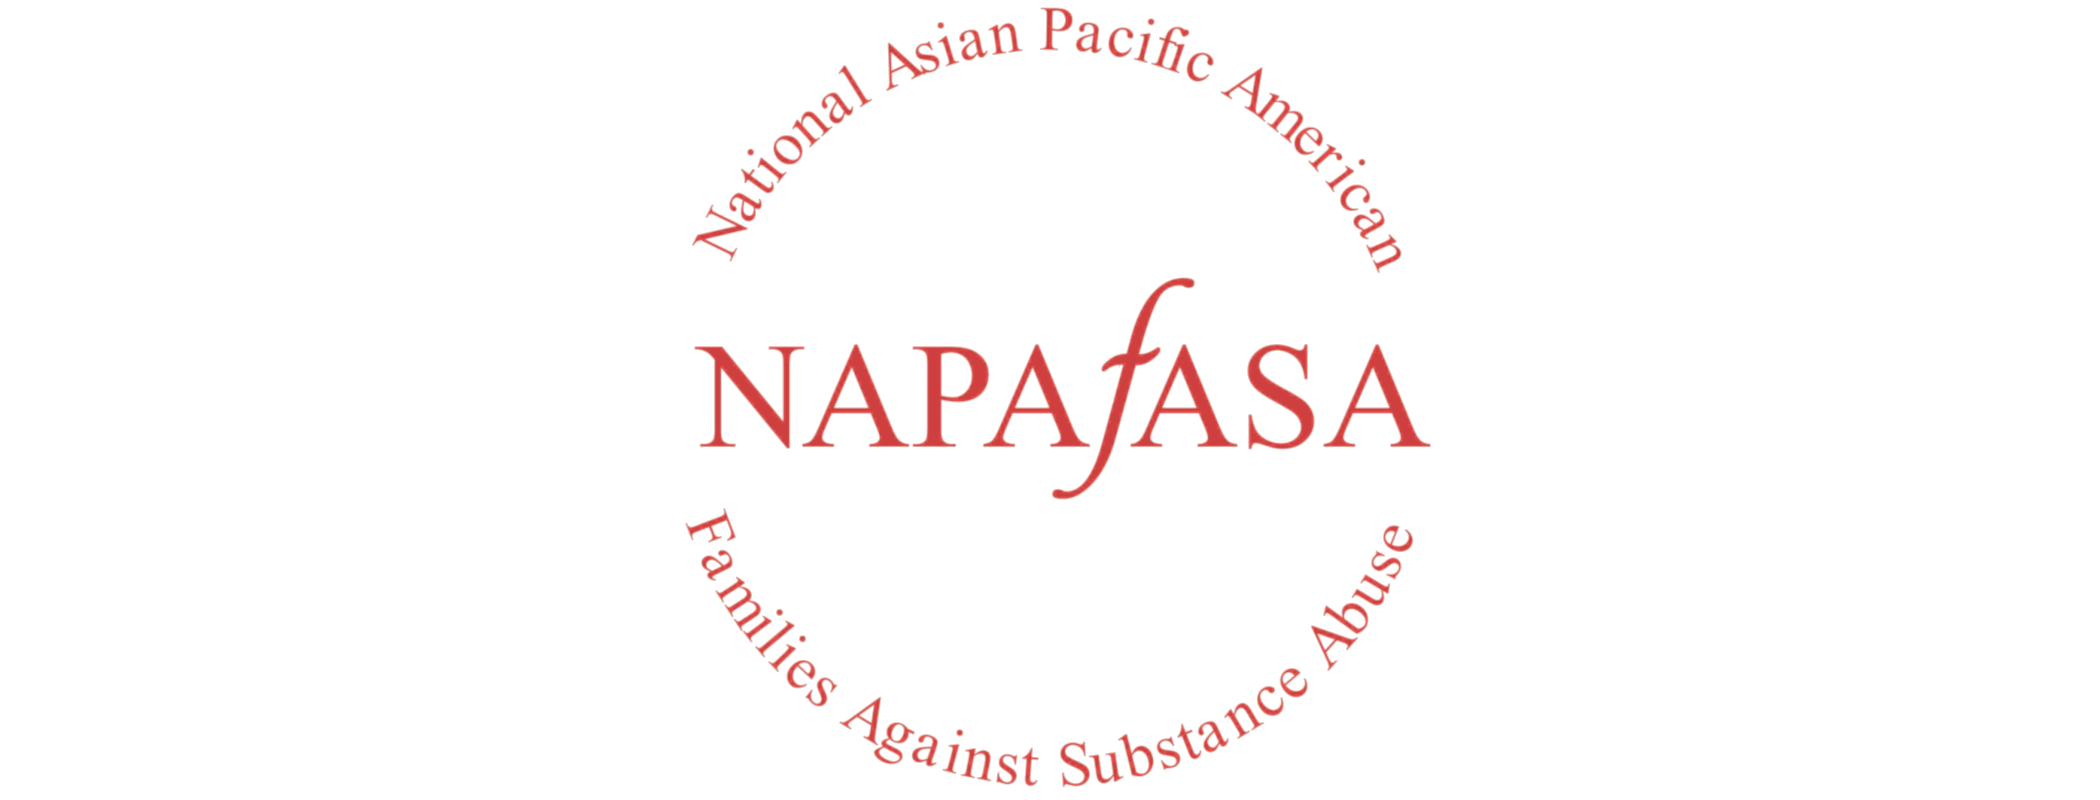 - National Asian Pacific AmericanFamilies Against Substance Abuse340 E. 2nd St., Ste. 409, Los Angeles 90012napafasa.org